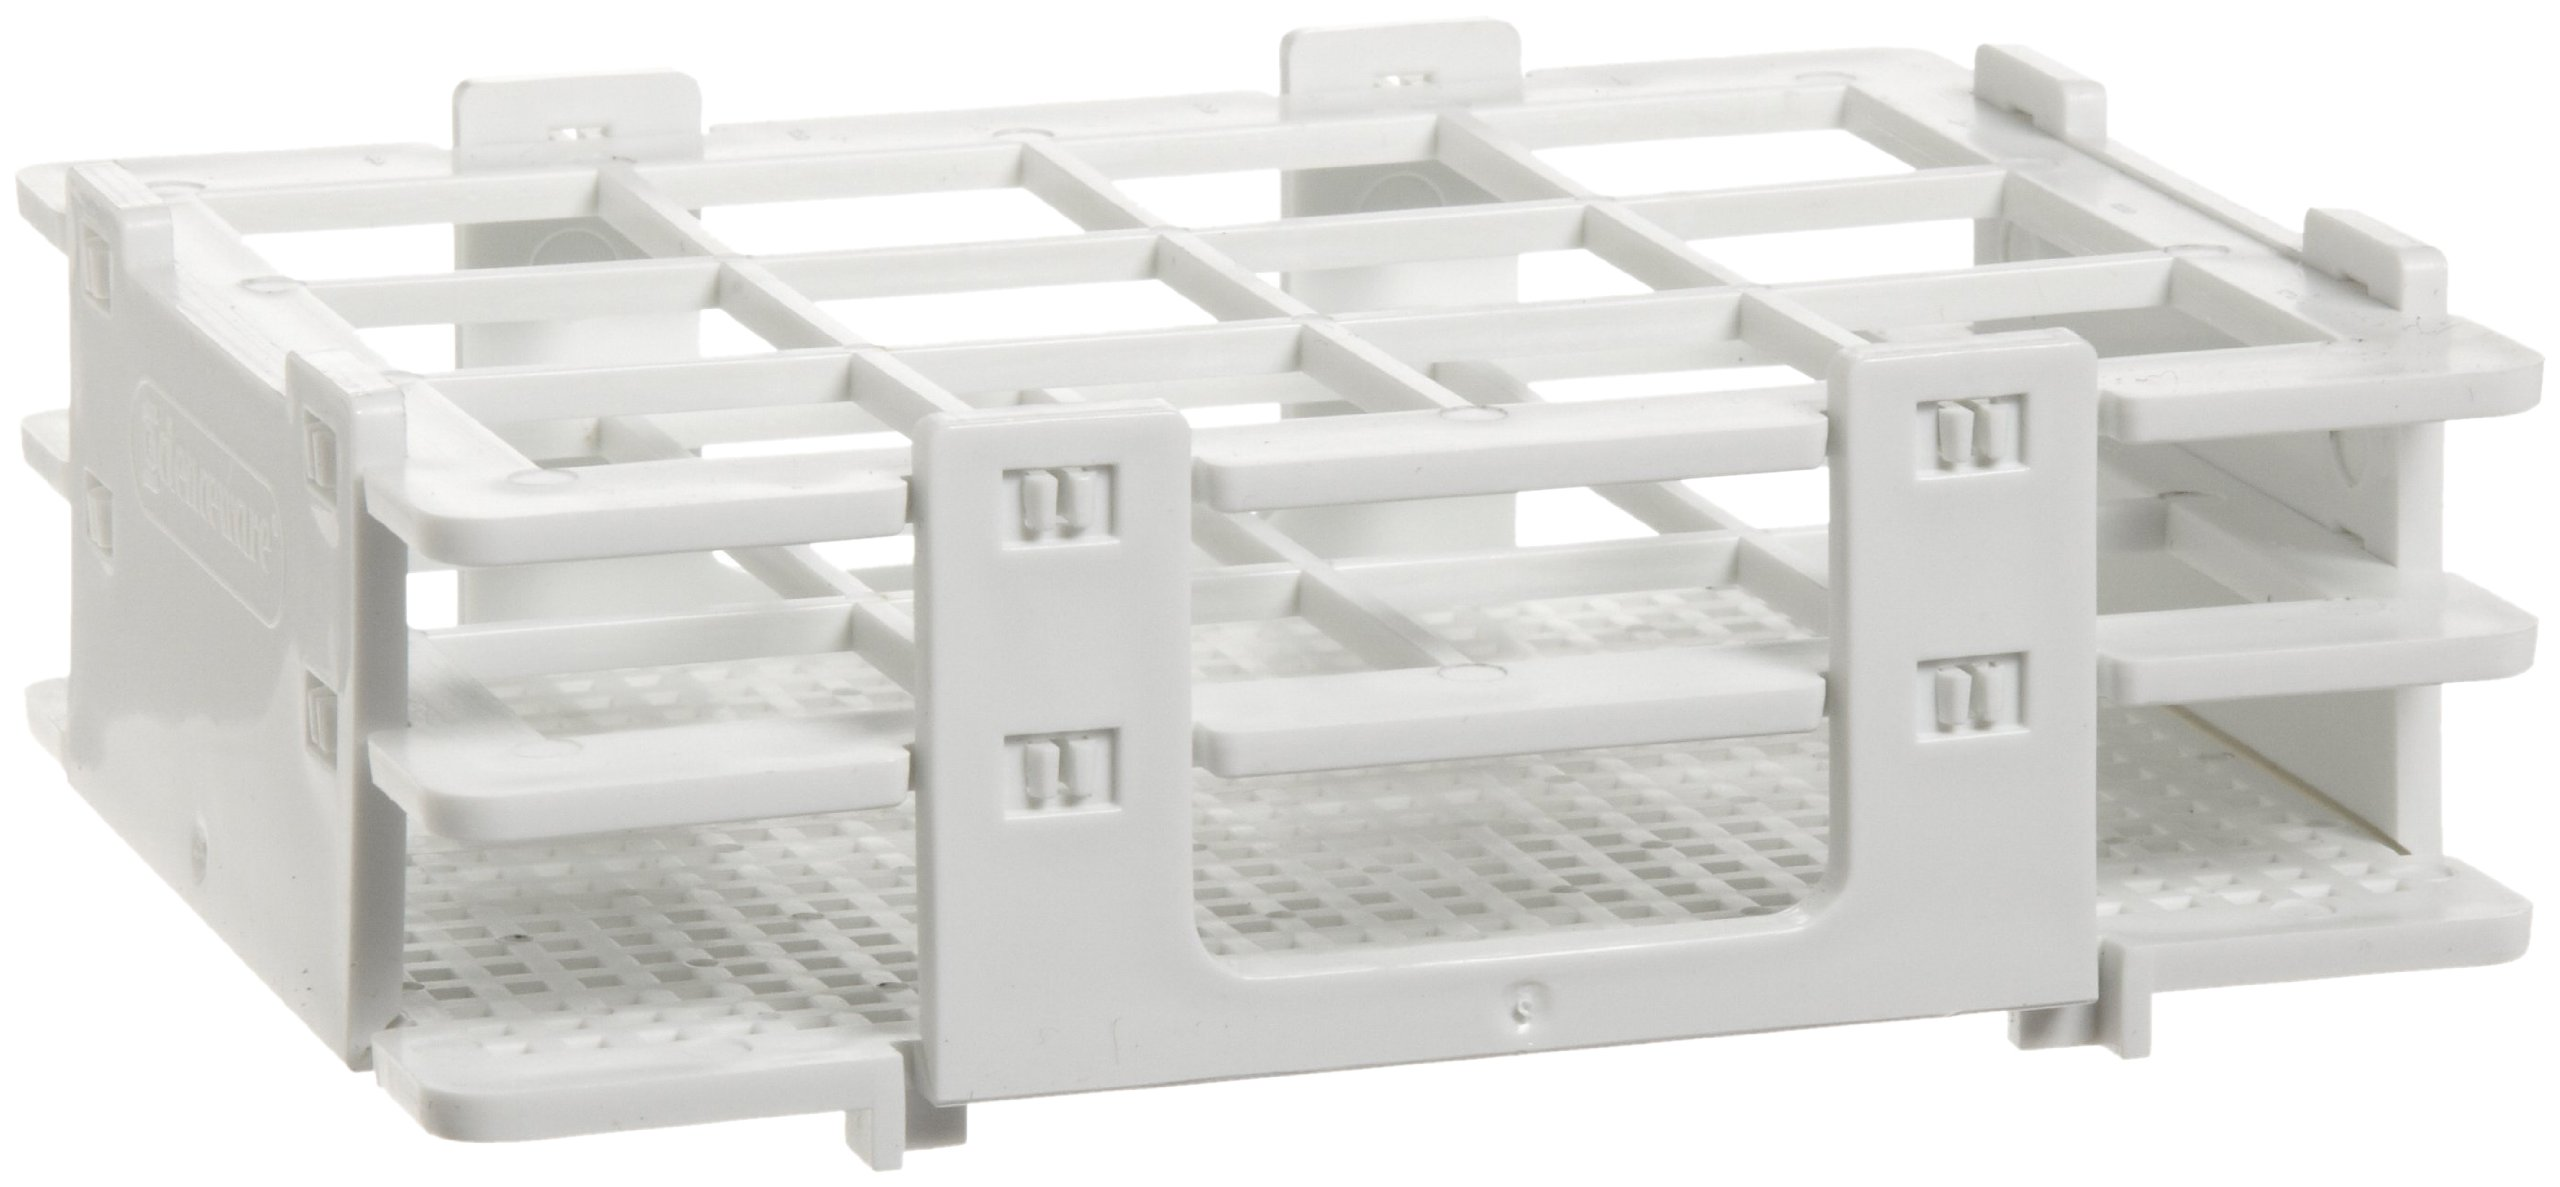 Bel-Art F18514-0025 No-Wire Bottle and Vial Rack; 20-25mm, 12 Places, 5.08 x 4.15 x 1.70 in., Polypropylene by SP Scienceware